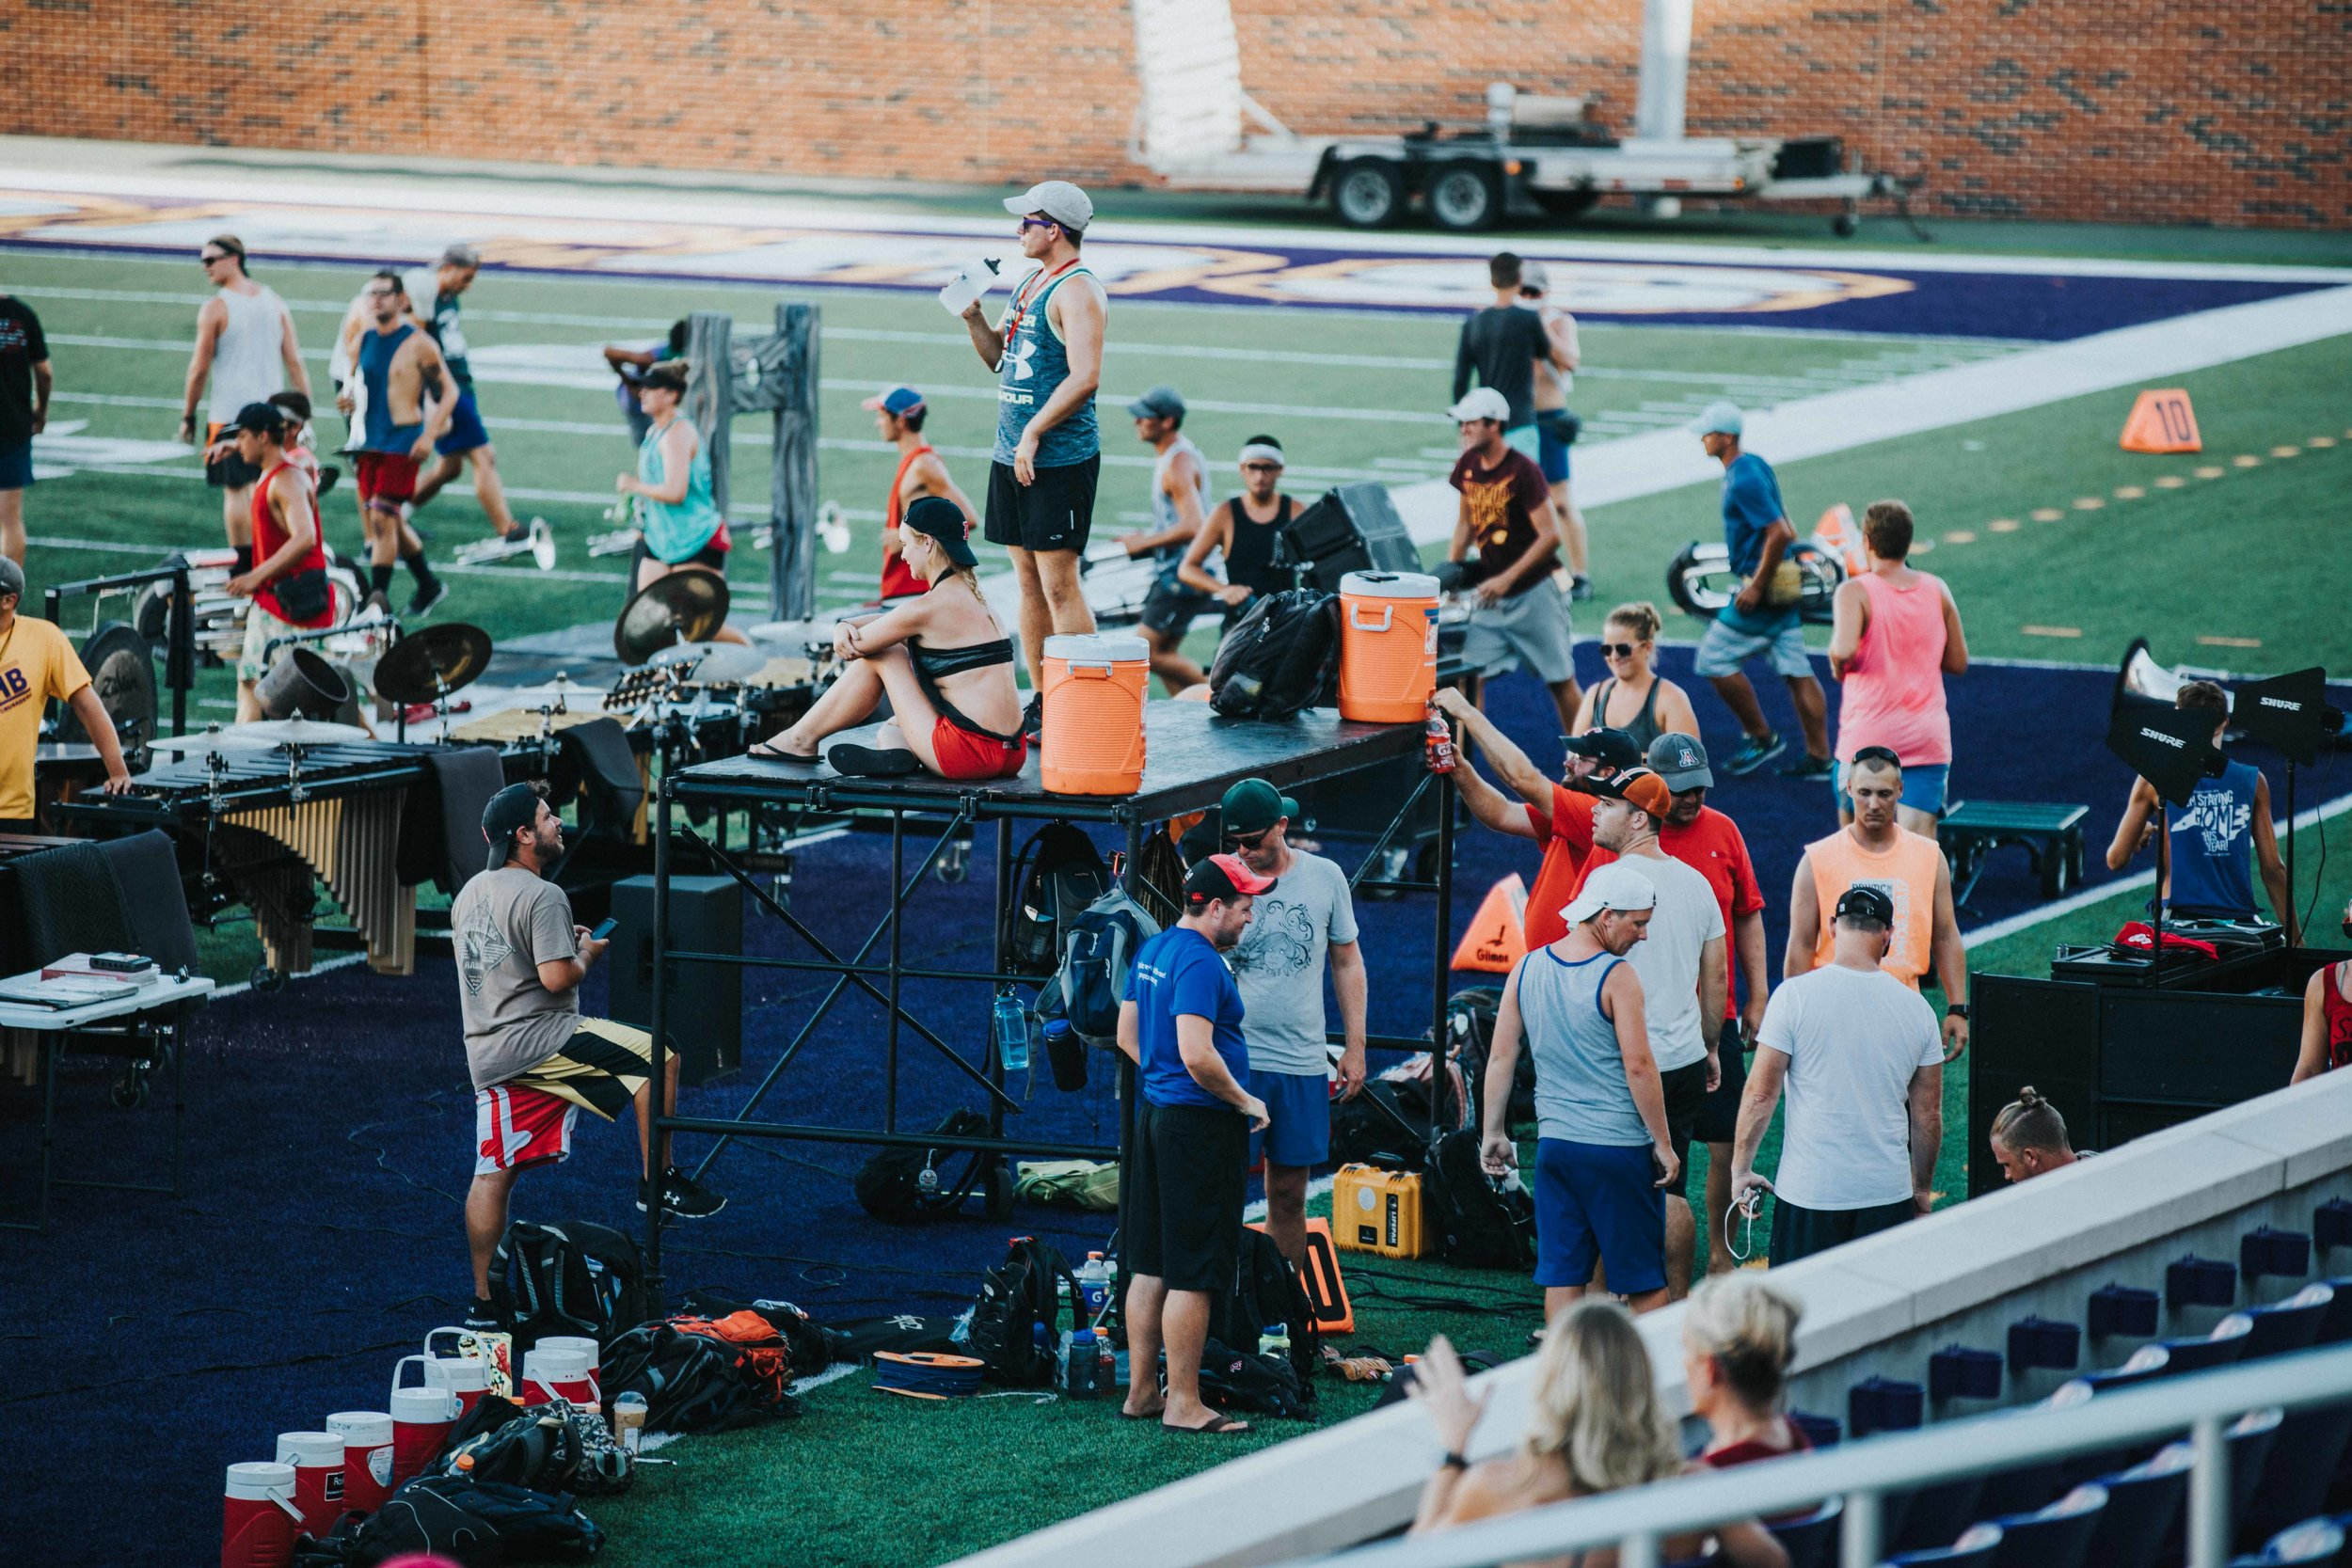 The Boston Crusaders rehearsed Friday, July 21st in preparation for DCI's Southwestern Regional the following day